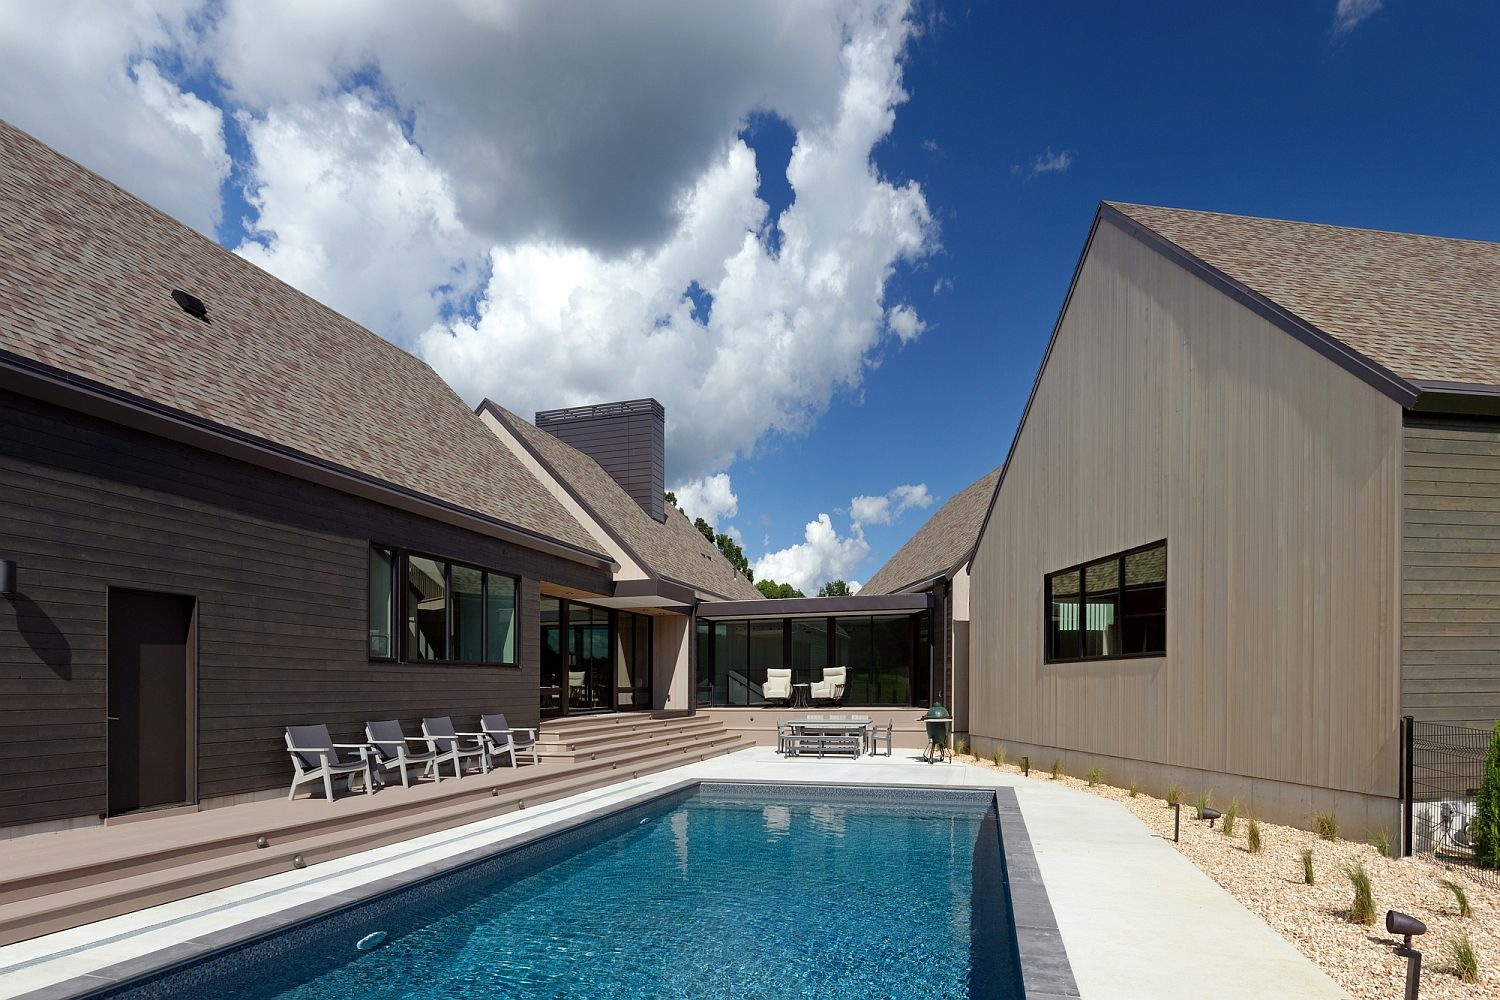 Central-courtyard-is-protected-naturally-by-the-different-gabled-structures